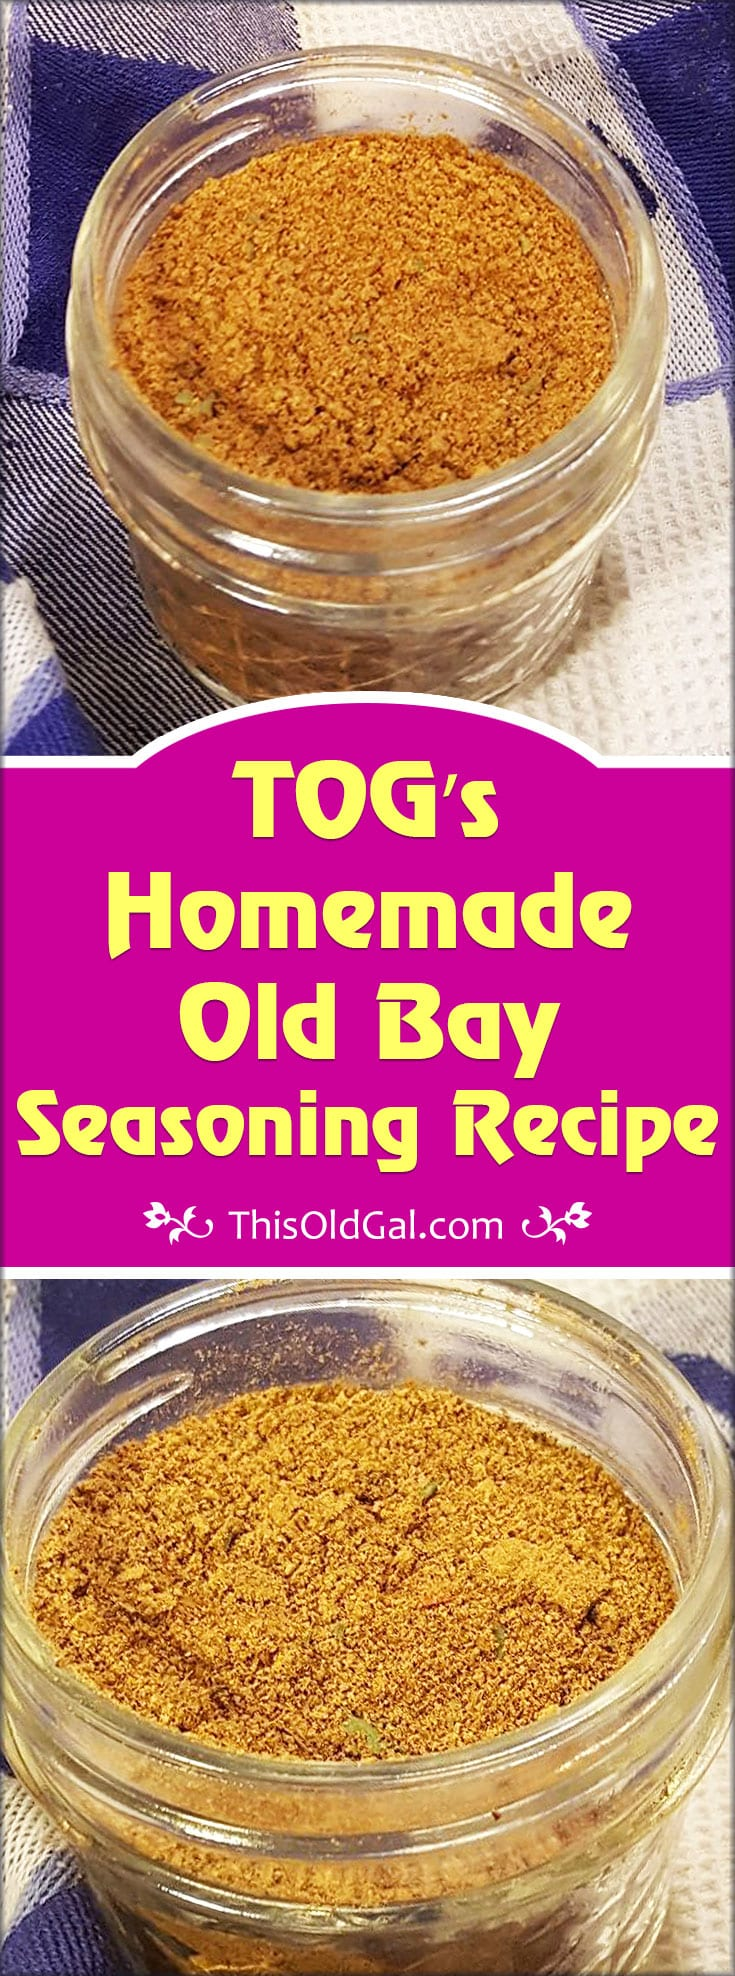 TOG's Homemade Old Bay Seasoning Recipe